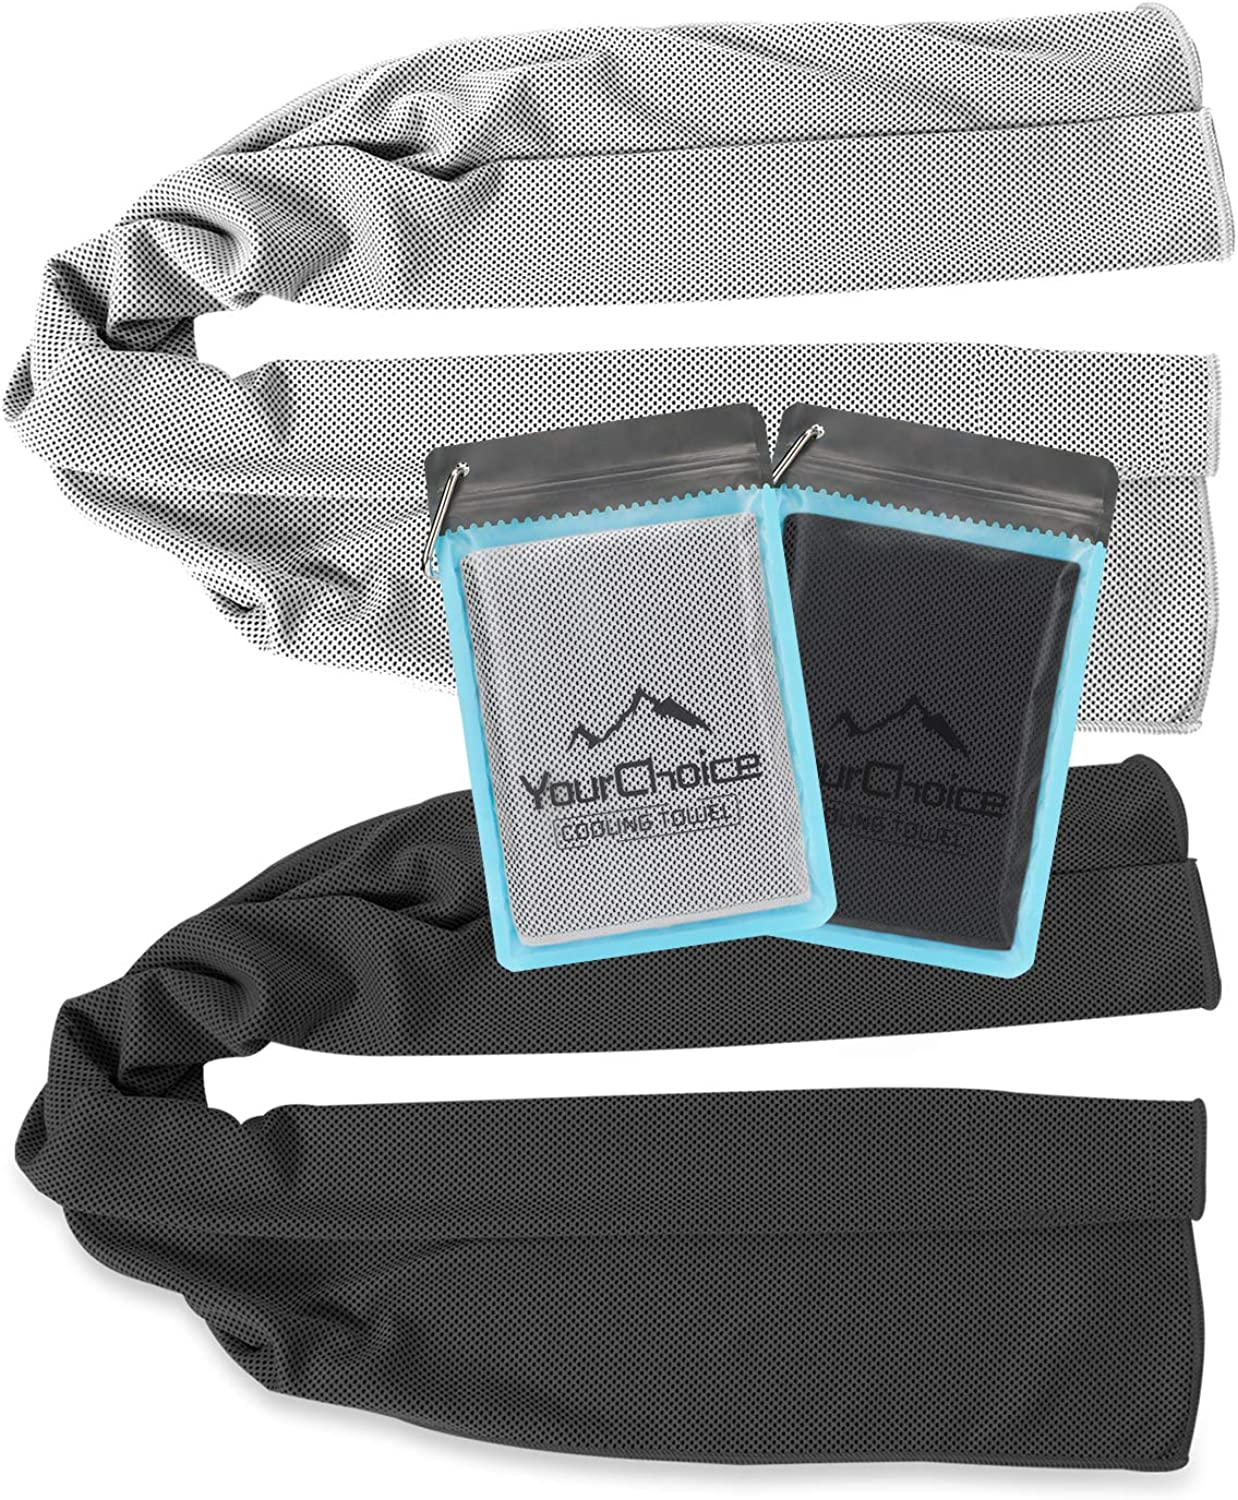 Your Choice Cooling Towel Workout, Gym, Fitness, Golf, Yoga, Camping, Hiking, Bowling, Travel, Outdoor Sports Towel for Instant Cooling Relief